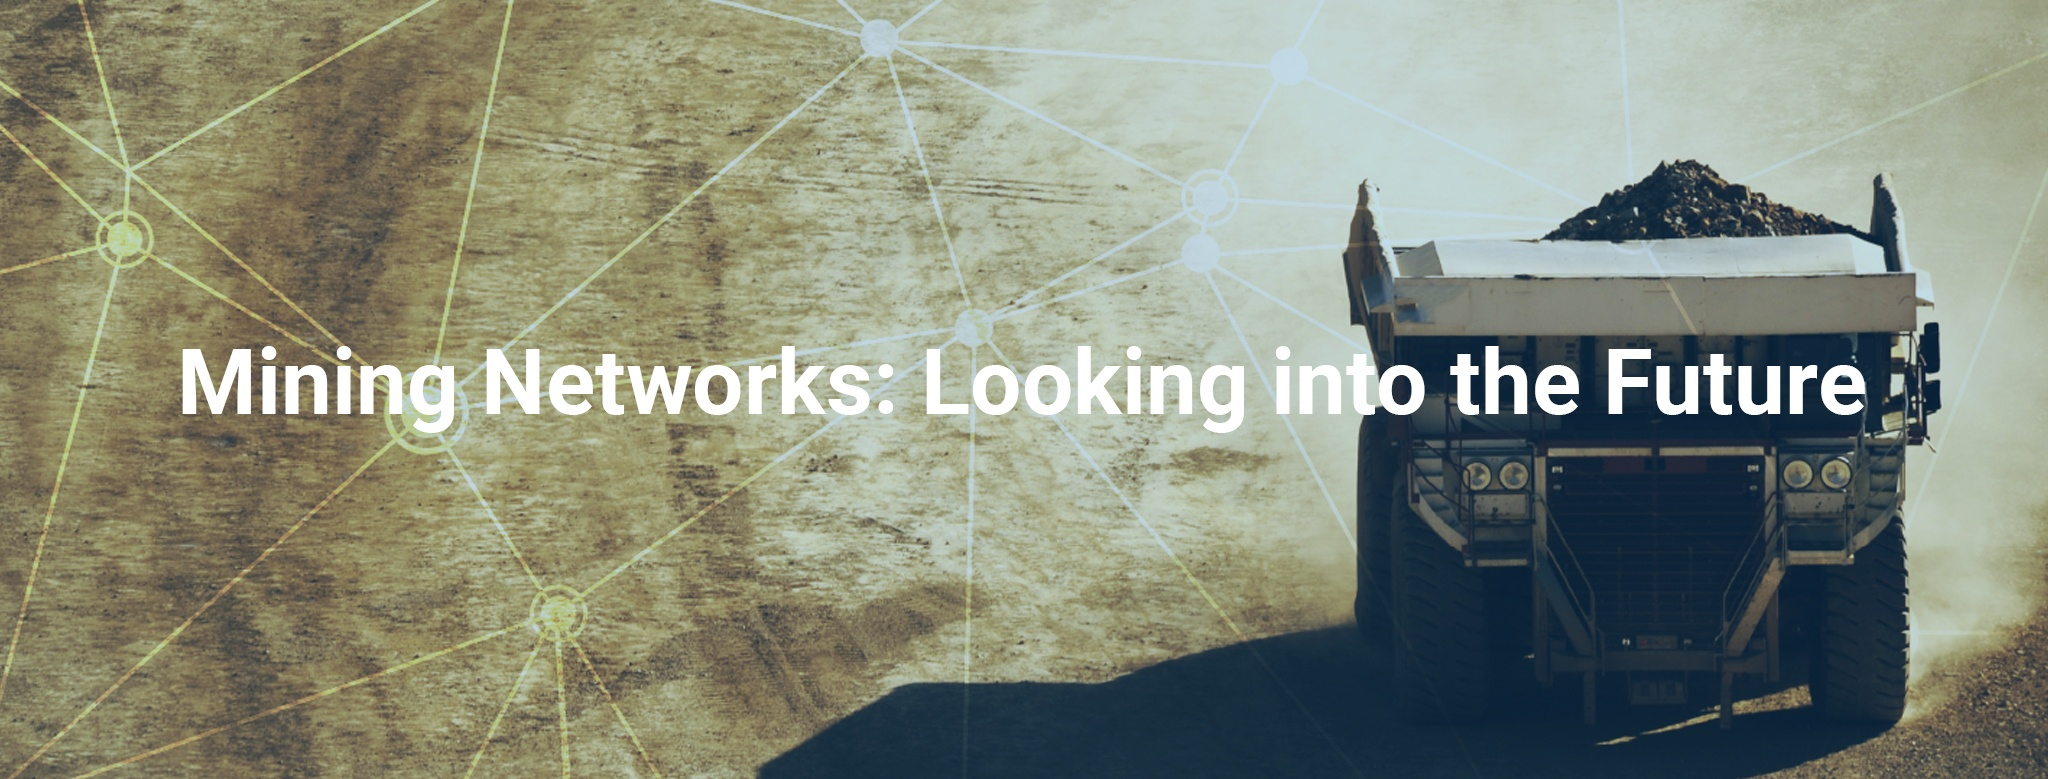 Mining Networks: Looking into the Future